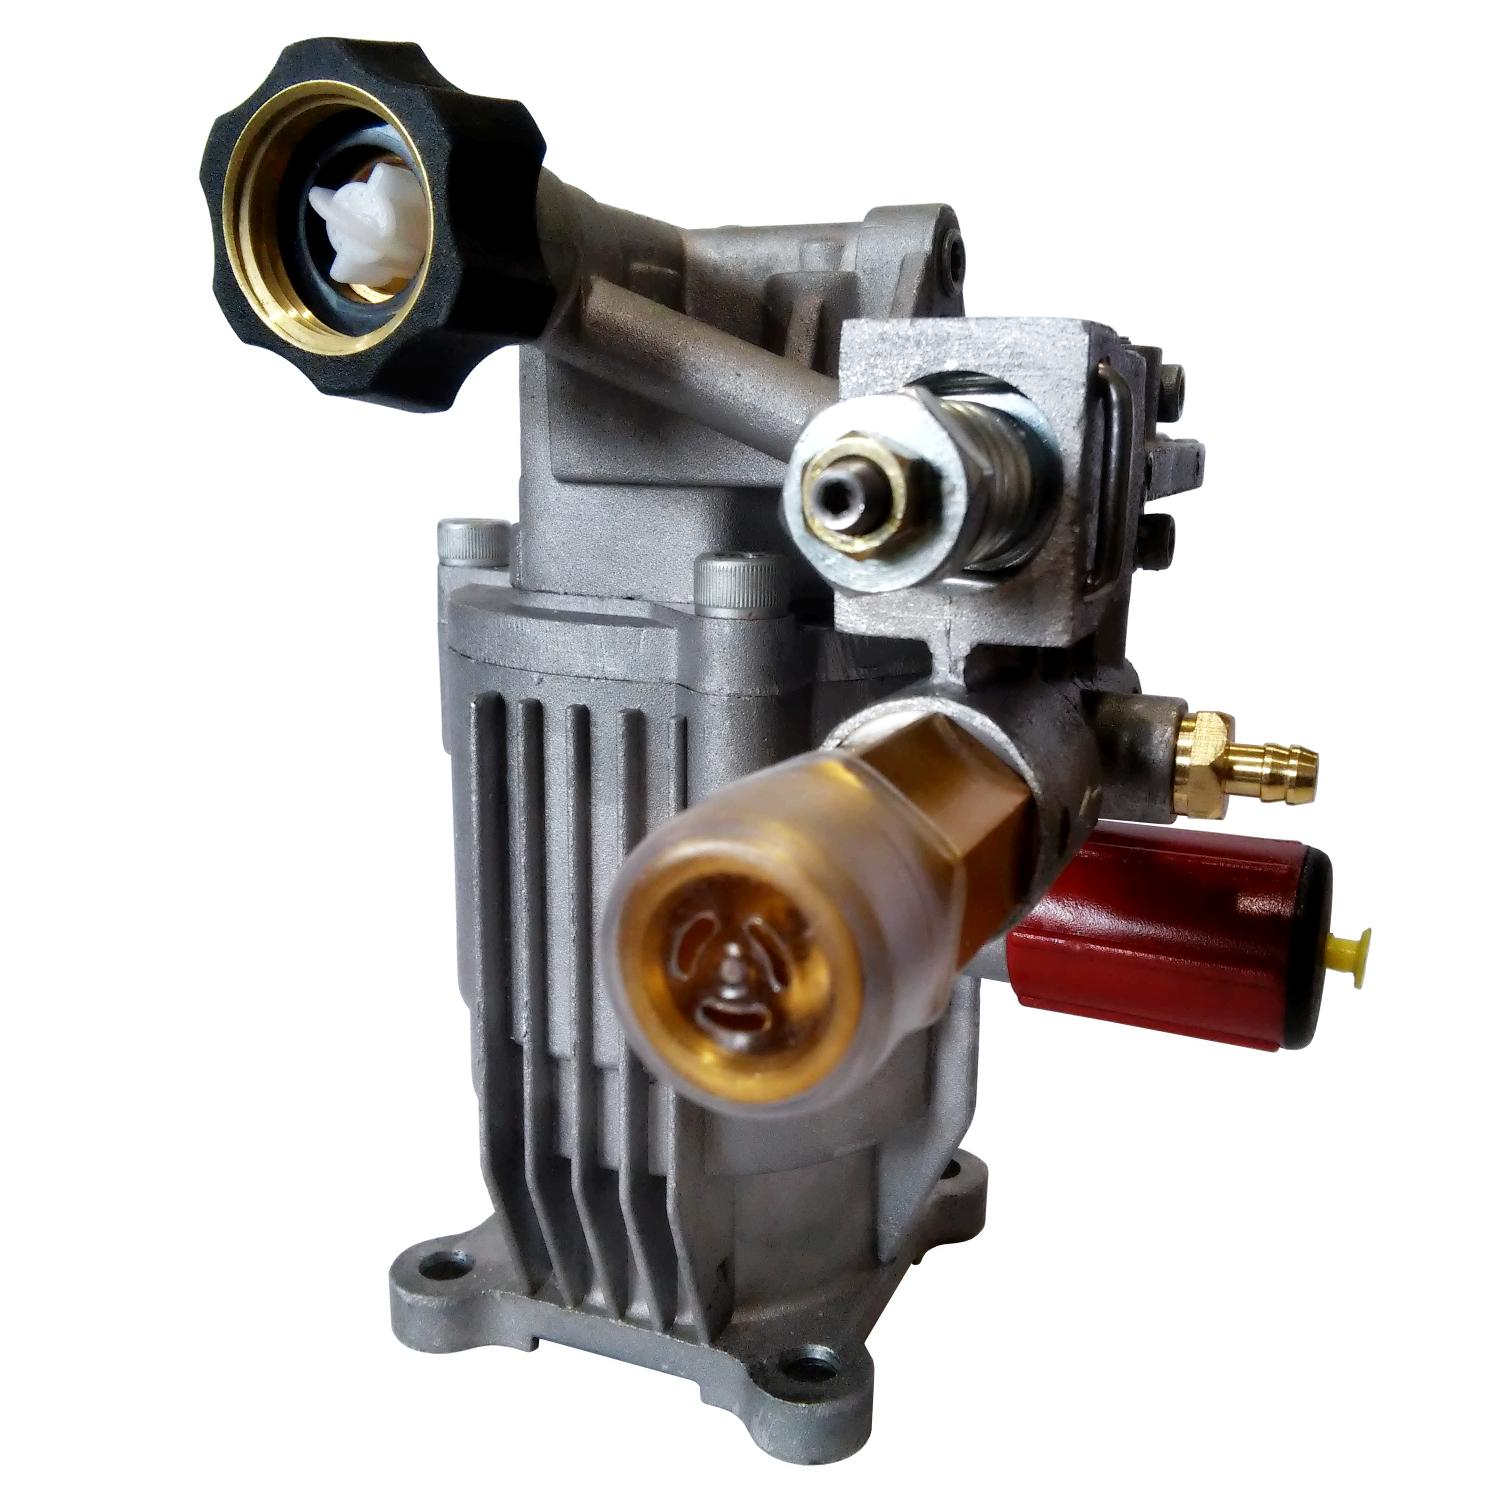 PRESSURE WASHER PUMP Honda Excell EXHA2425-WK EXHA2425-WK-1 PWZ0142700.01 New